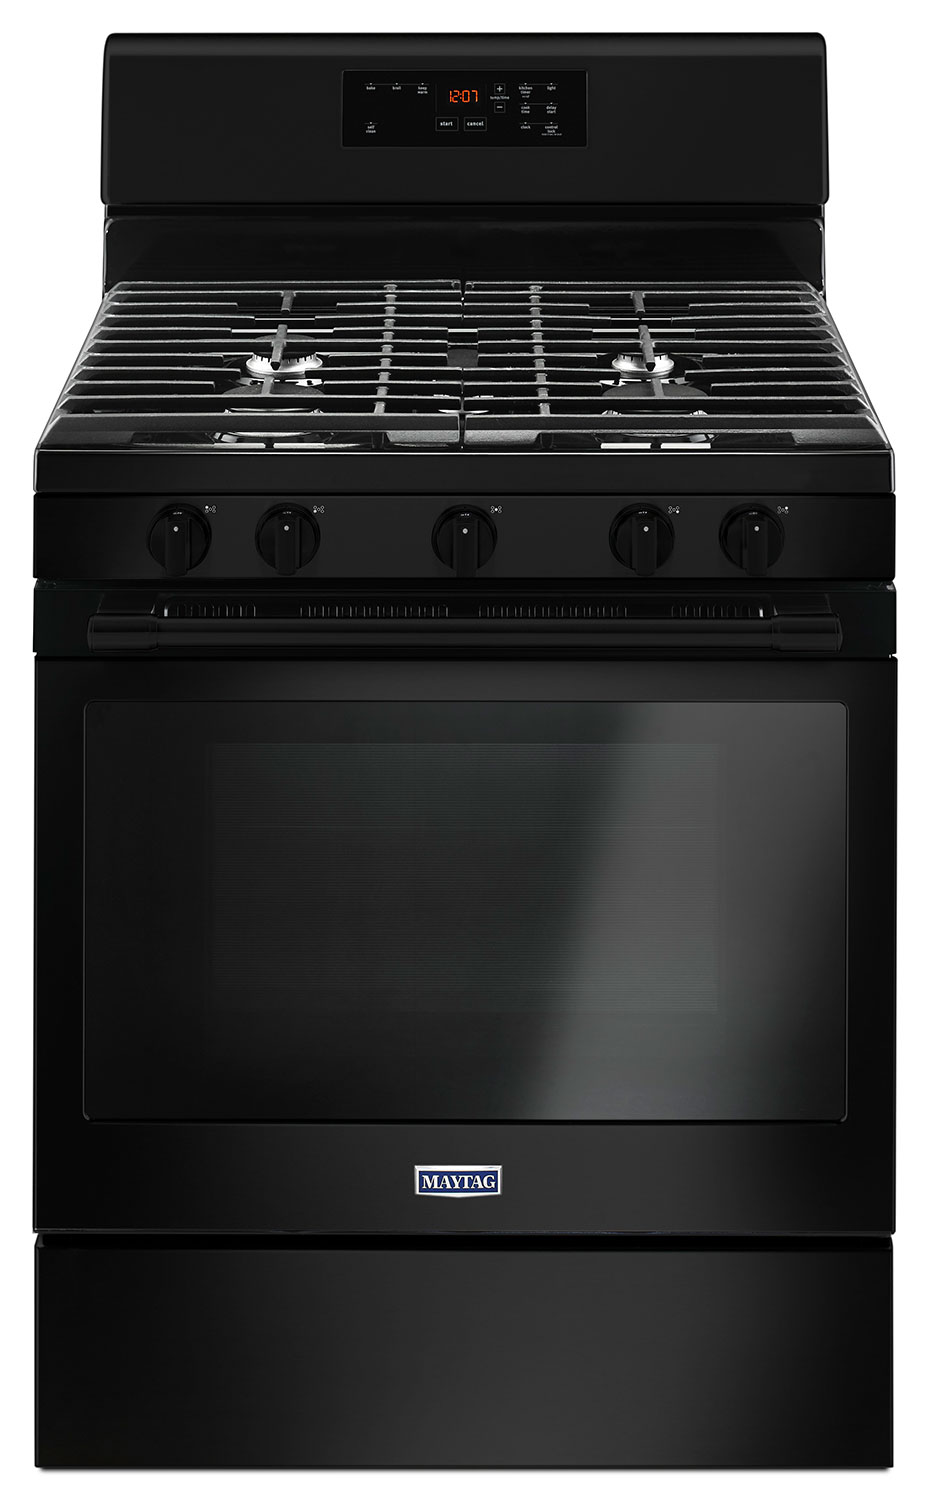 Maytag 5.0 Cu. Ft. Freestanding Gas Range with Oval Burner – MGR6600FB